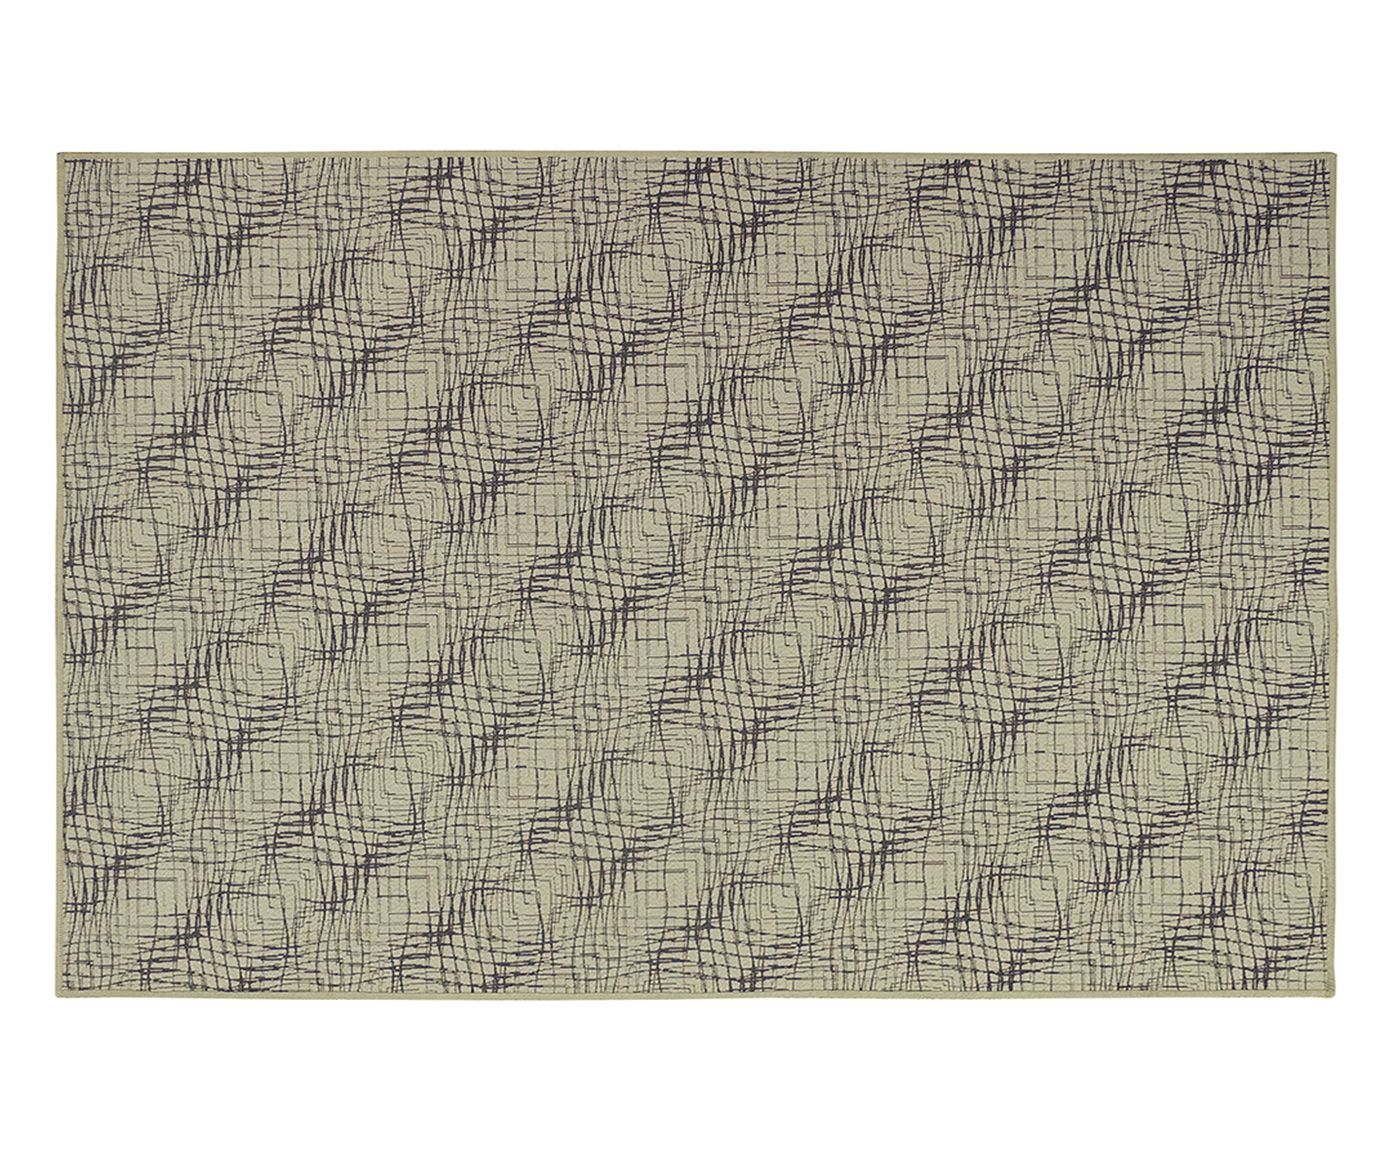 Tapete Facile Roscos Bege - 150X200cm | Westwing.com.br